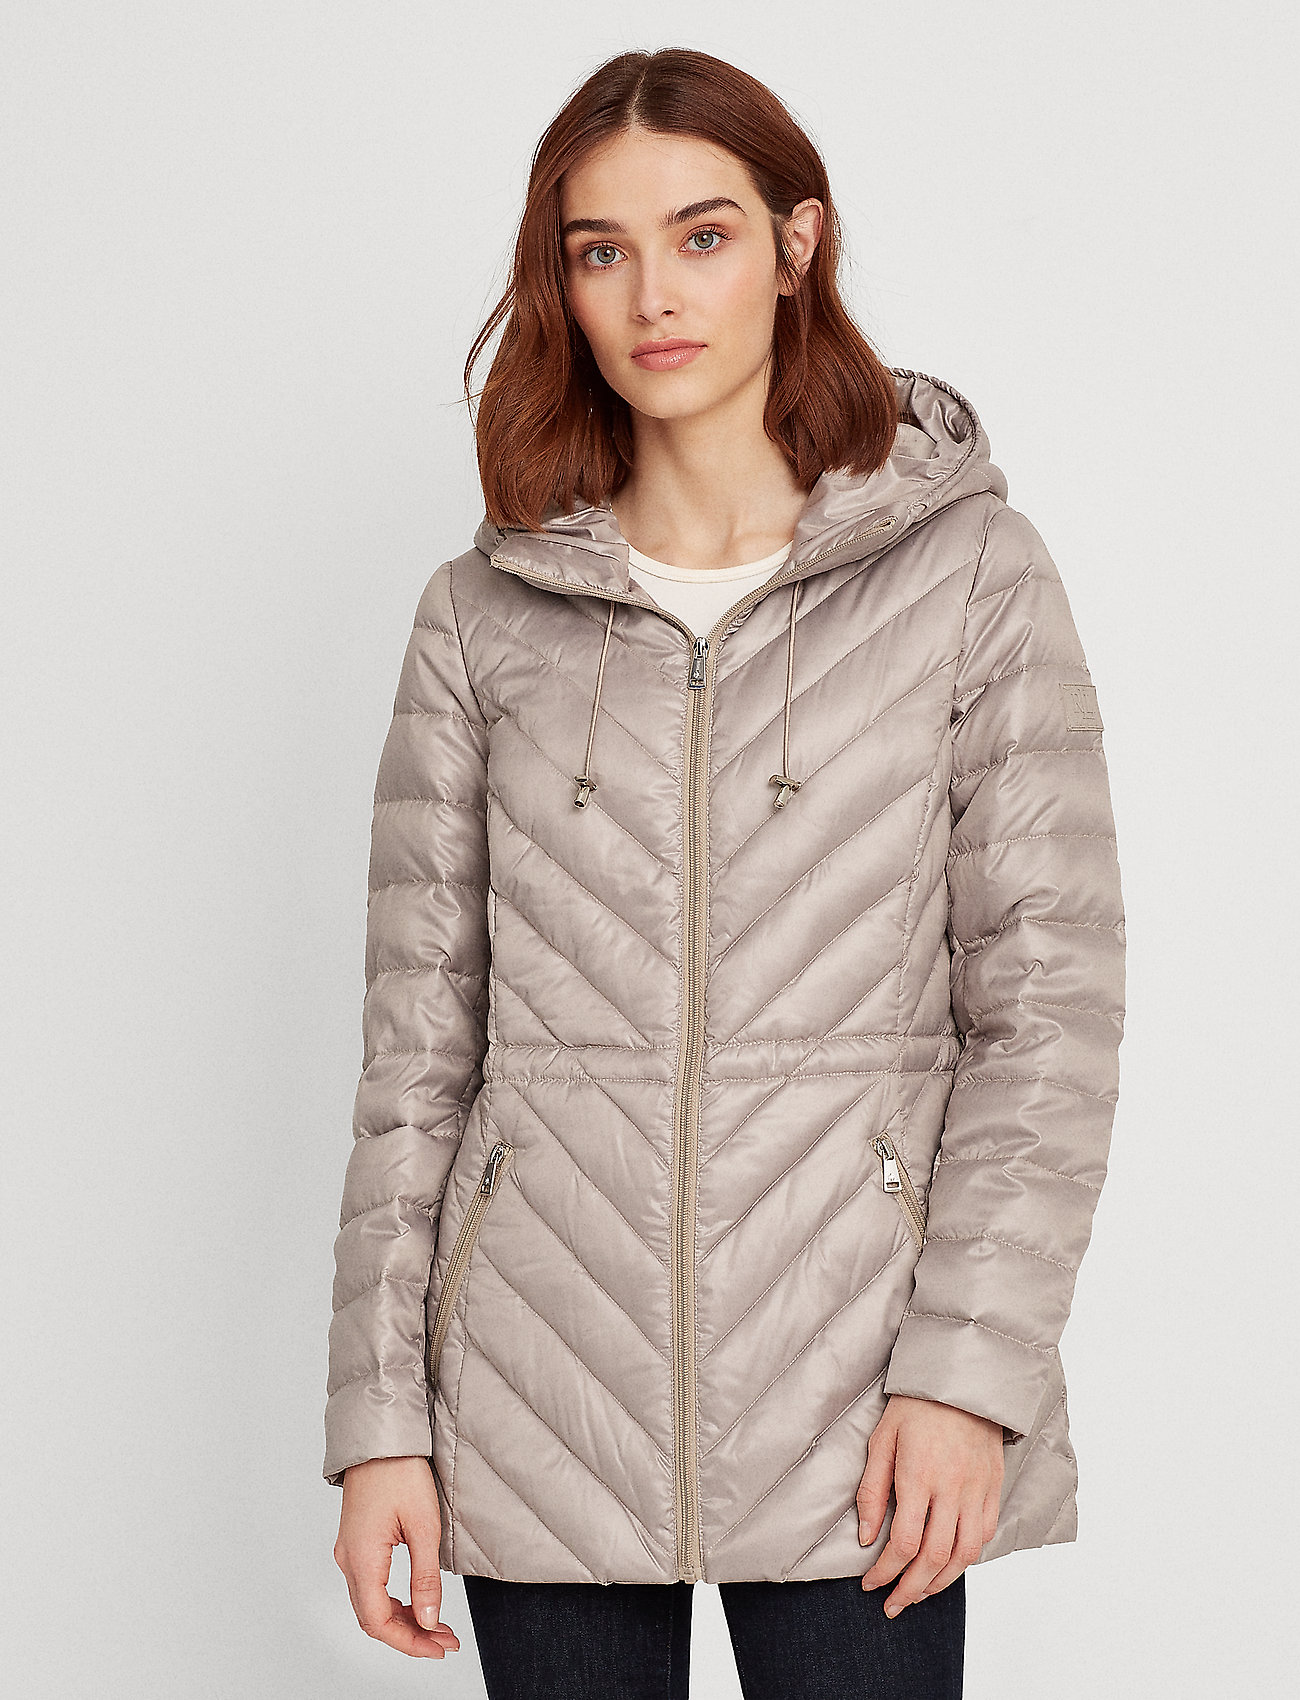 Lauren Ralph Lauren - Packable Down Anorak Coat - dynefrakke - cork - 0